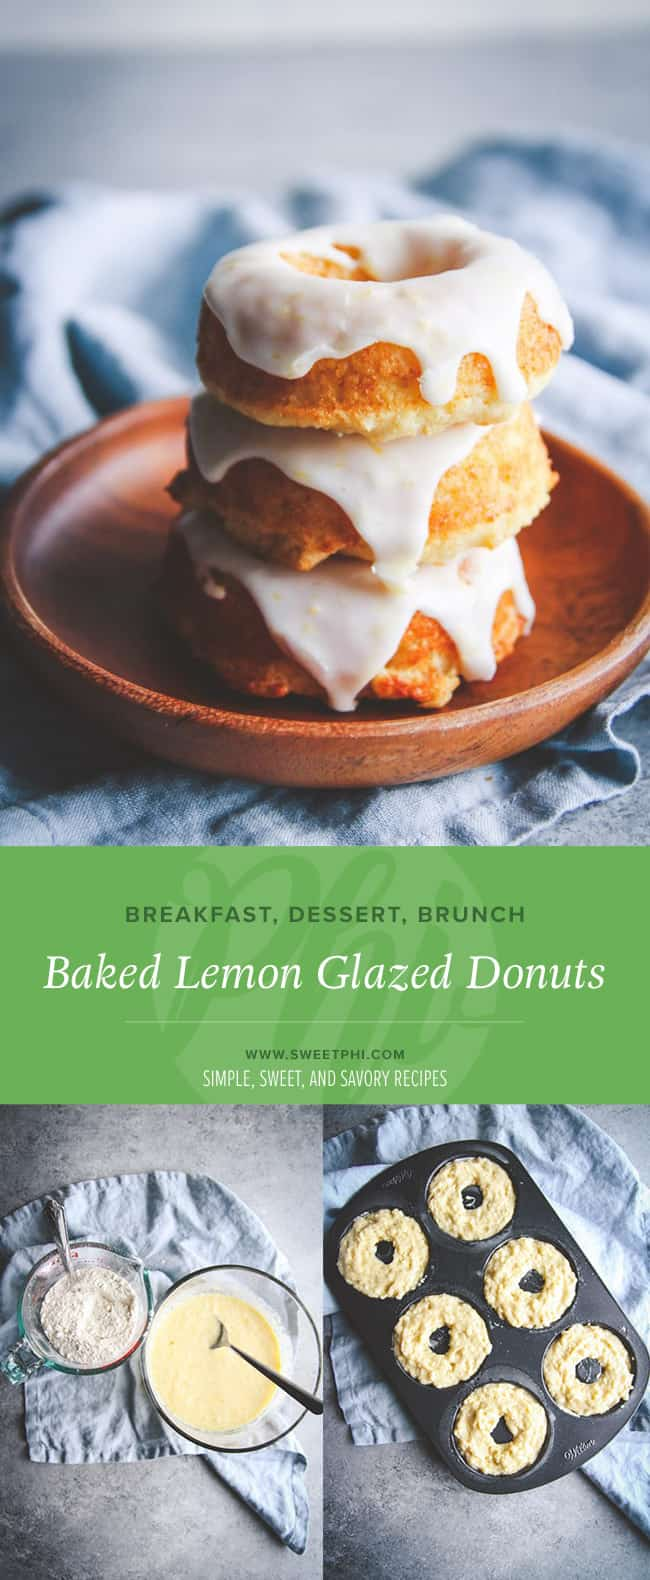 The most delicious lemon glazed donuts